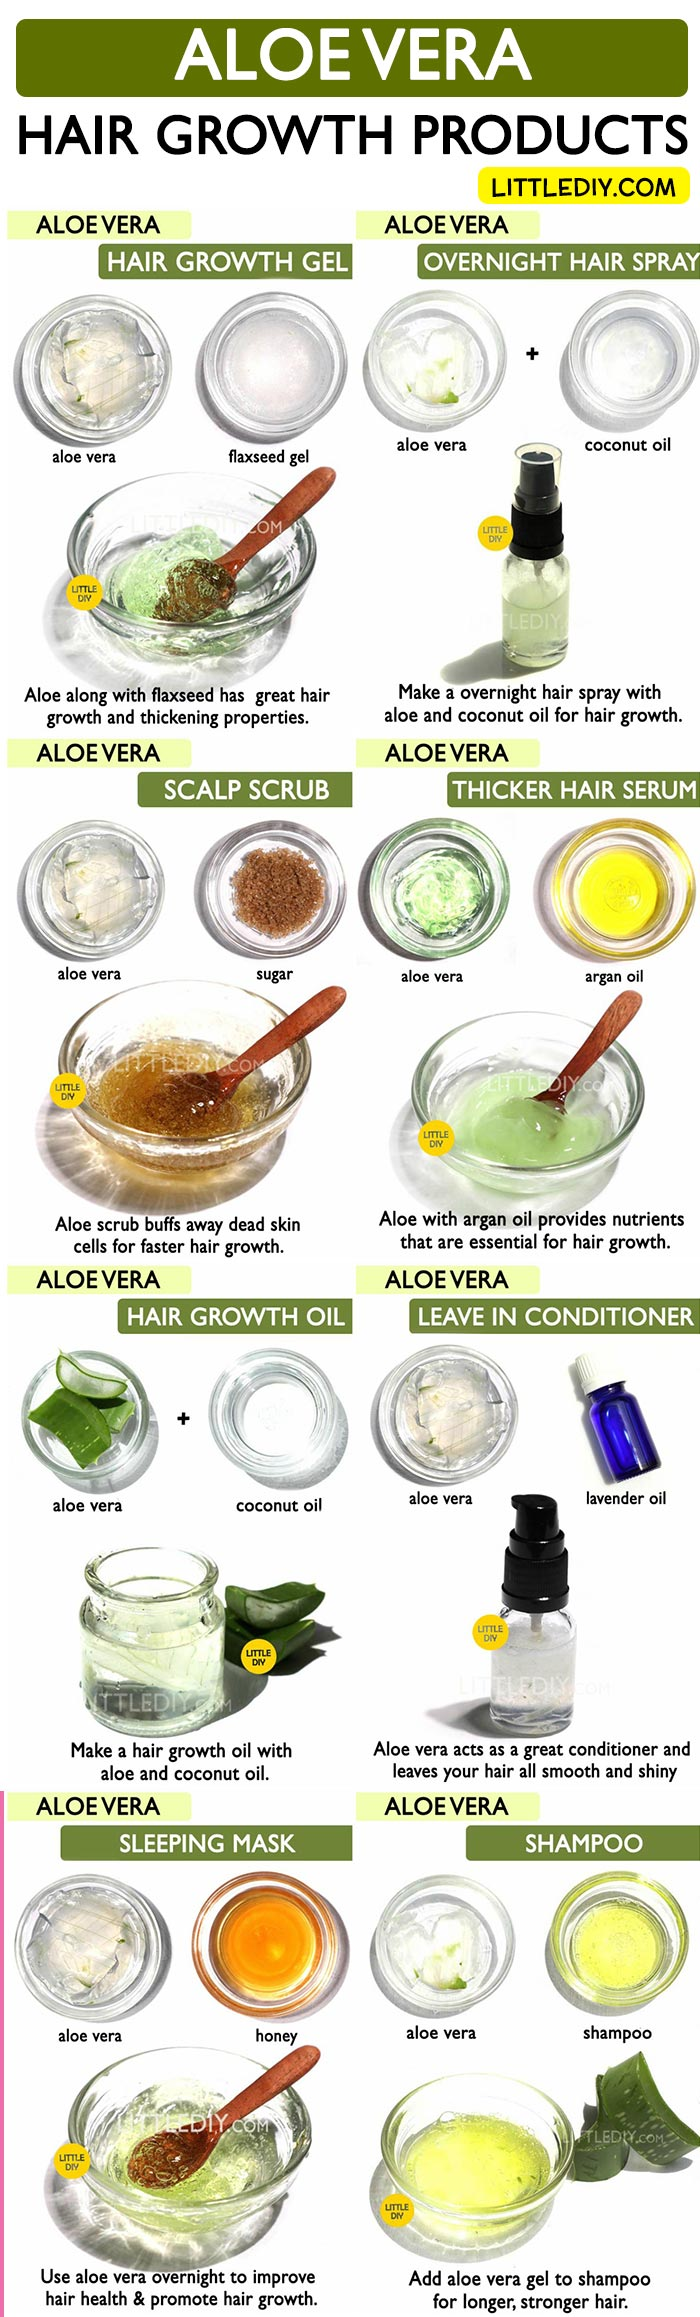 TOP ALOE VERA HAIR PRODUCTS